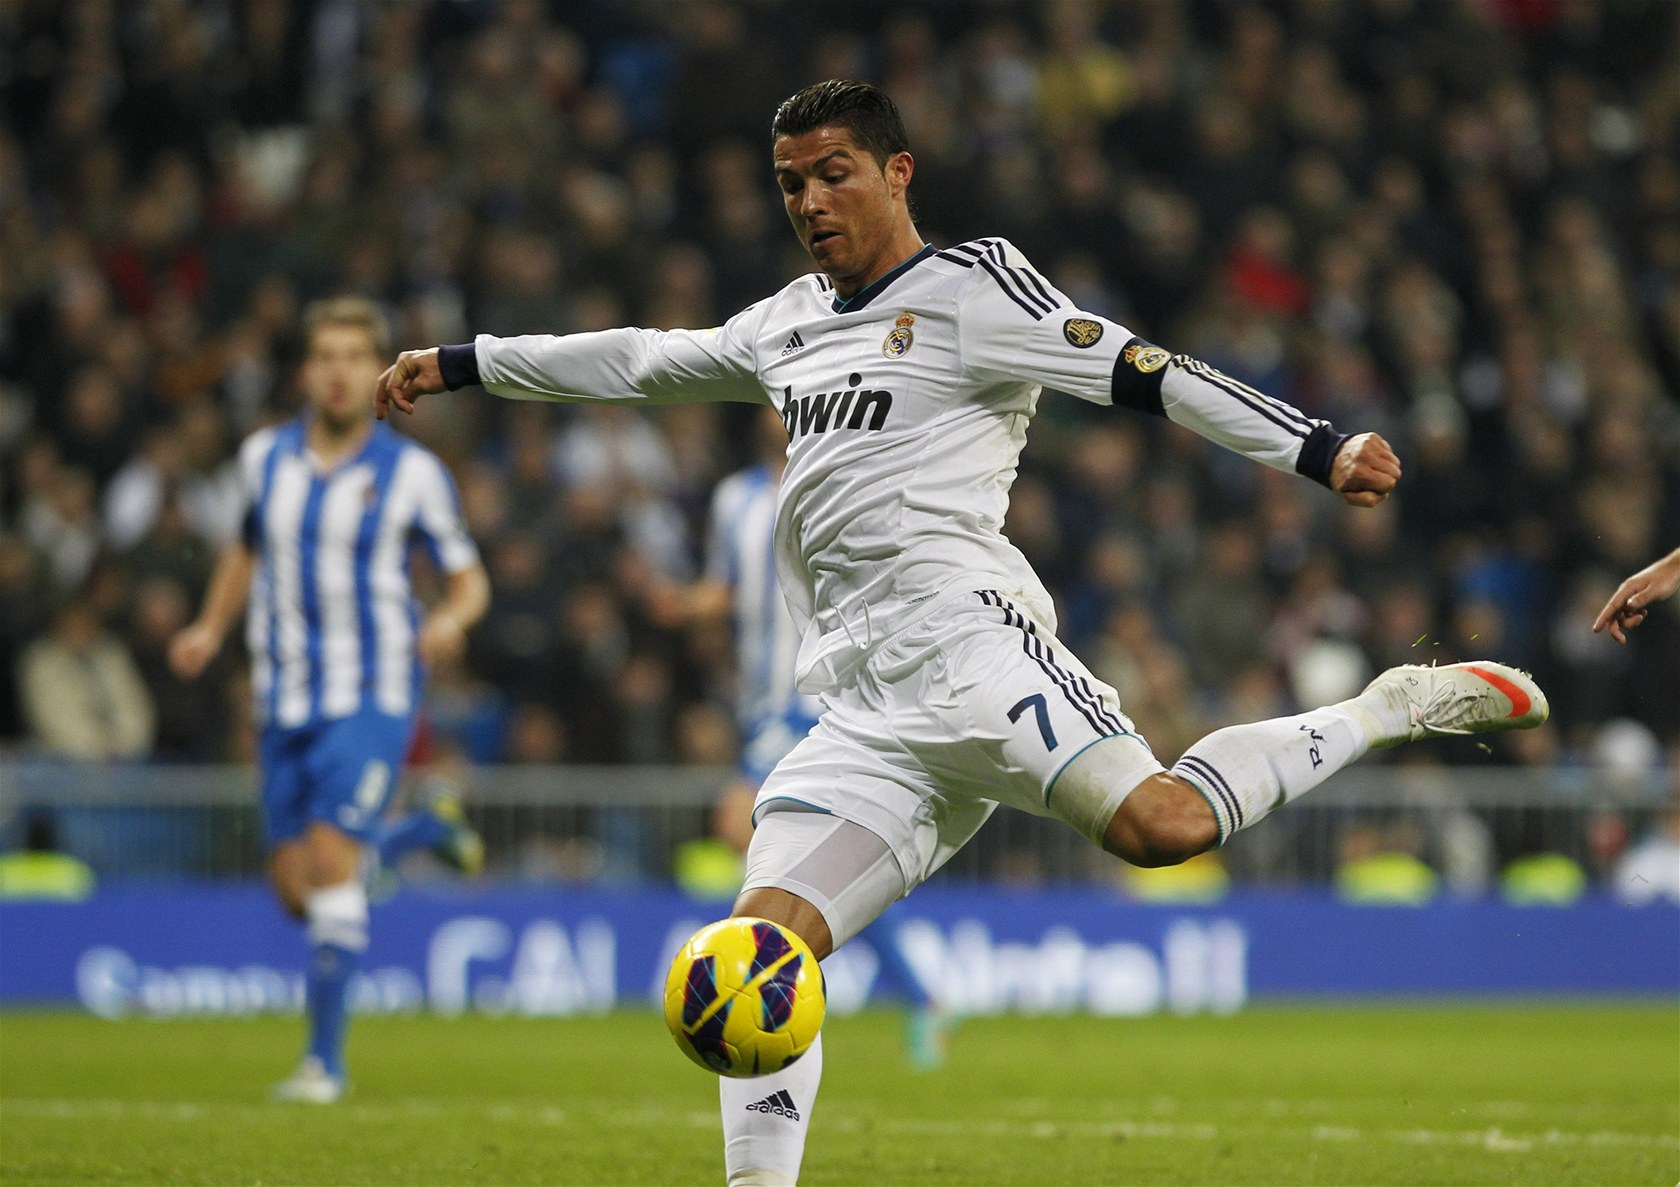 Hd Free Cristiano Ronaldo Kick Football Mobile Desktop